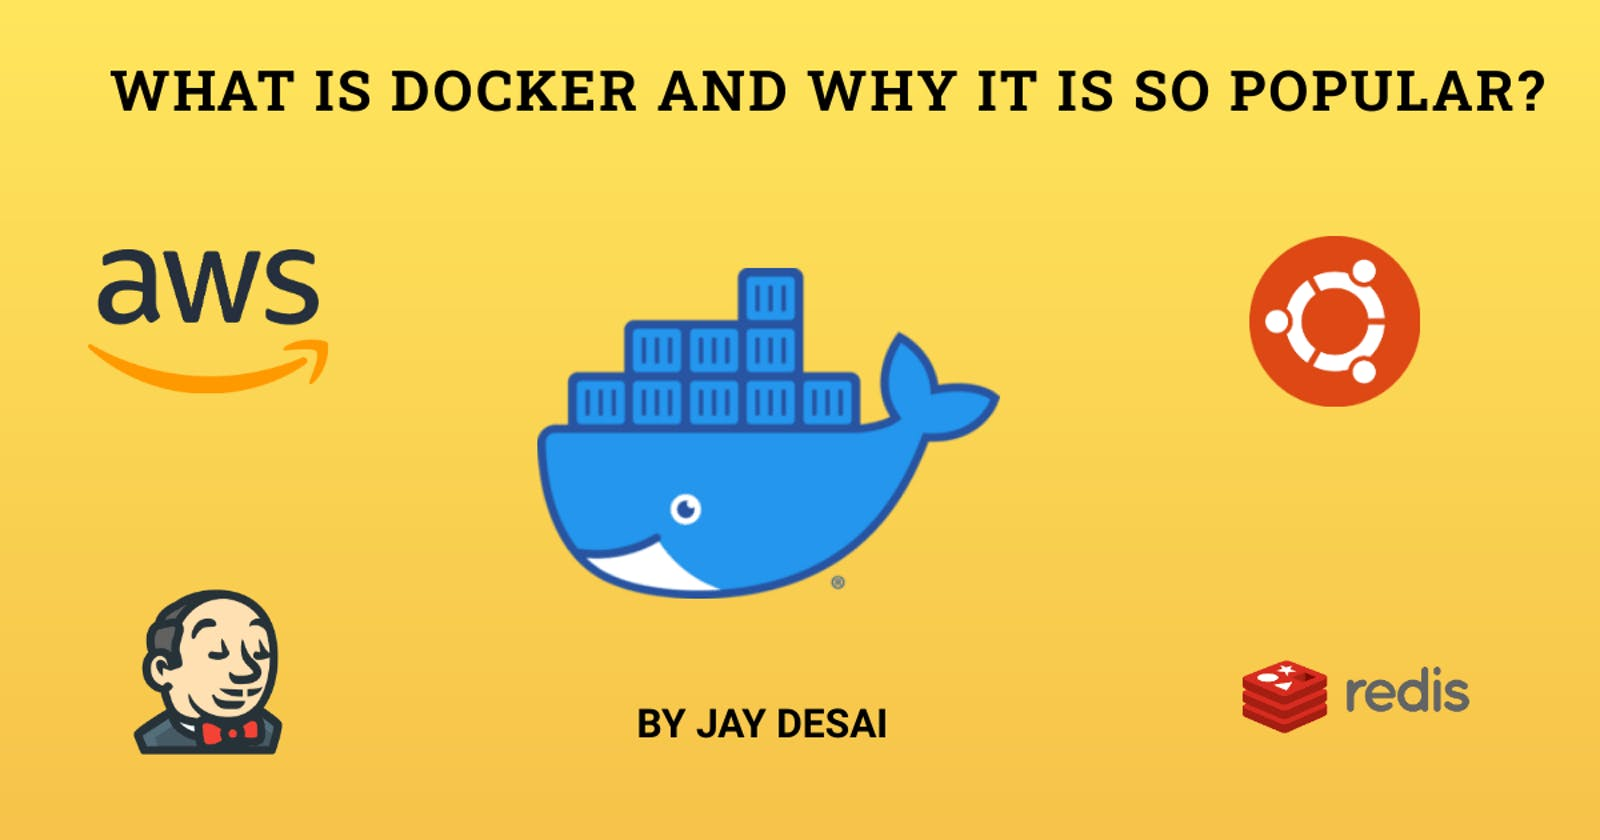 What is docker and Why it is so popular?